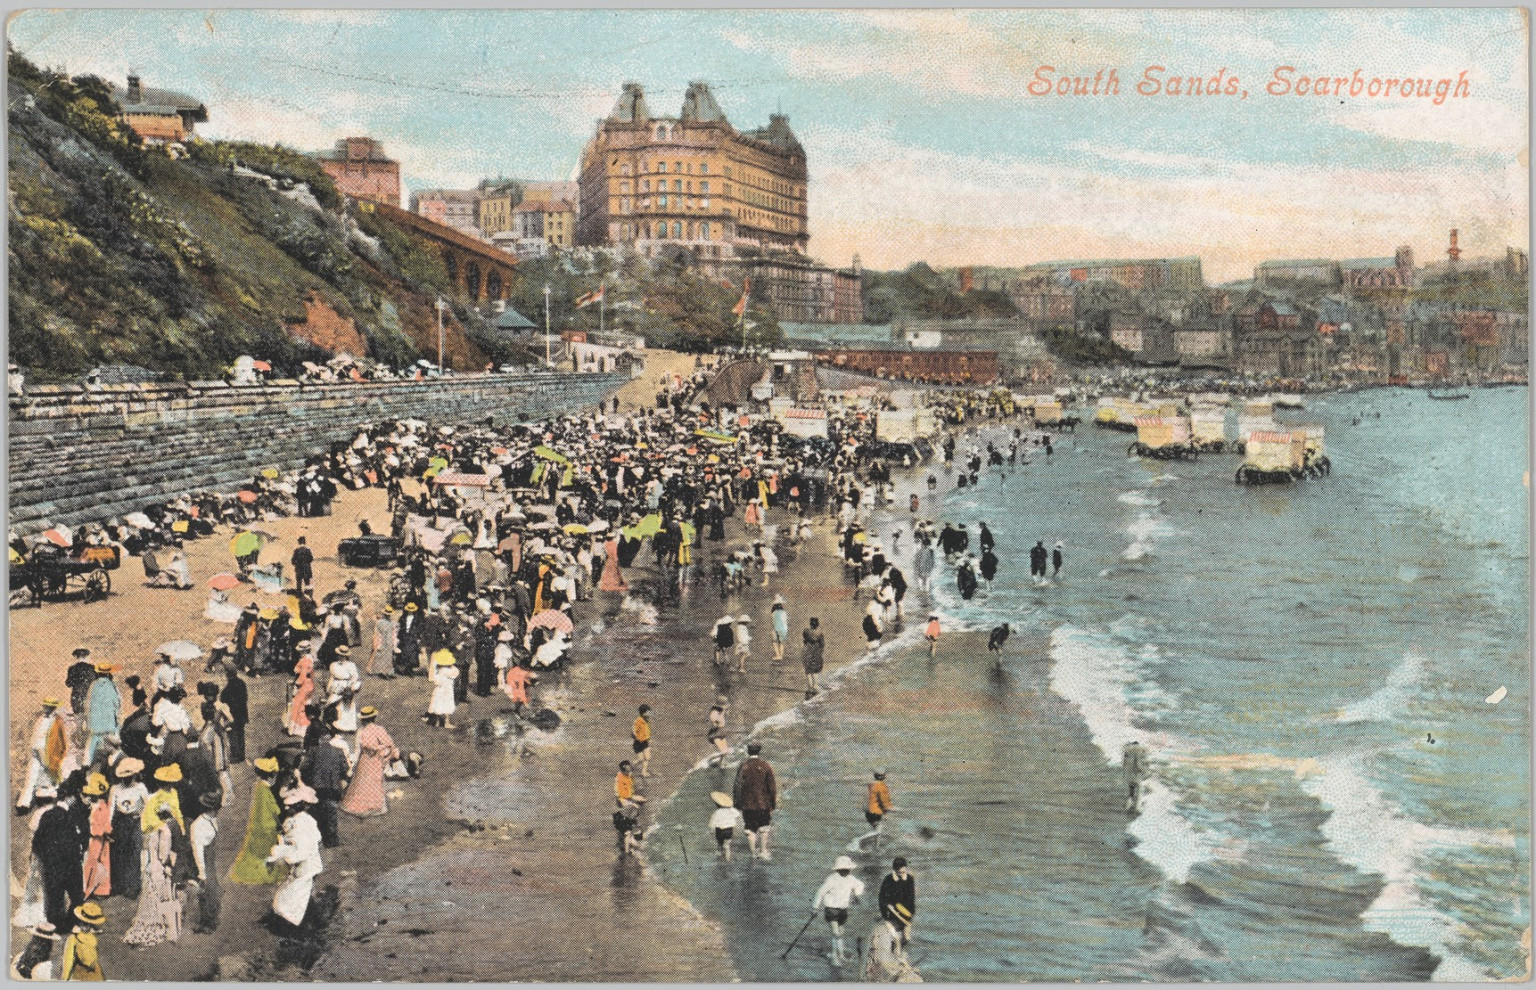 Postcard of South Sands at Scarborough, early 1900s